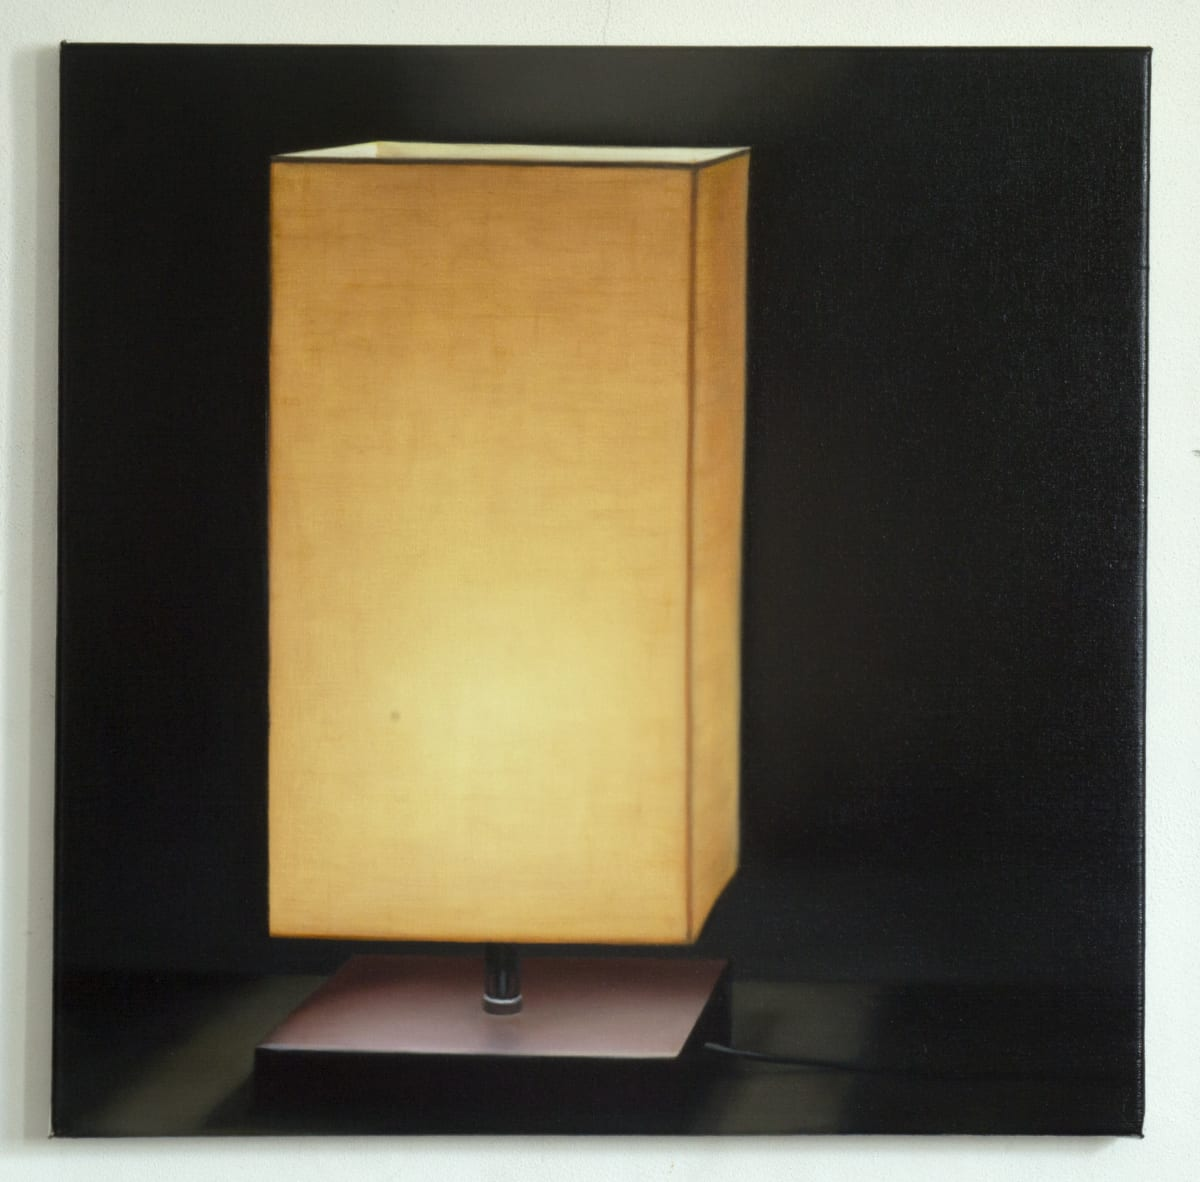 ARNOUT KILLIAN Lamp, 2018 oil on canvas 60 x 60cm signed and dated